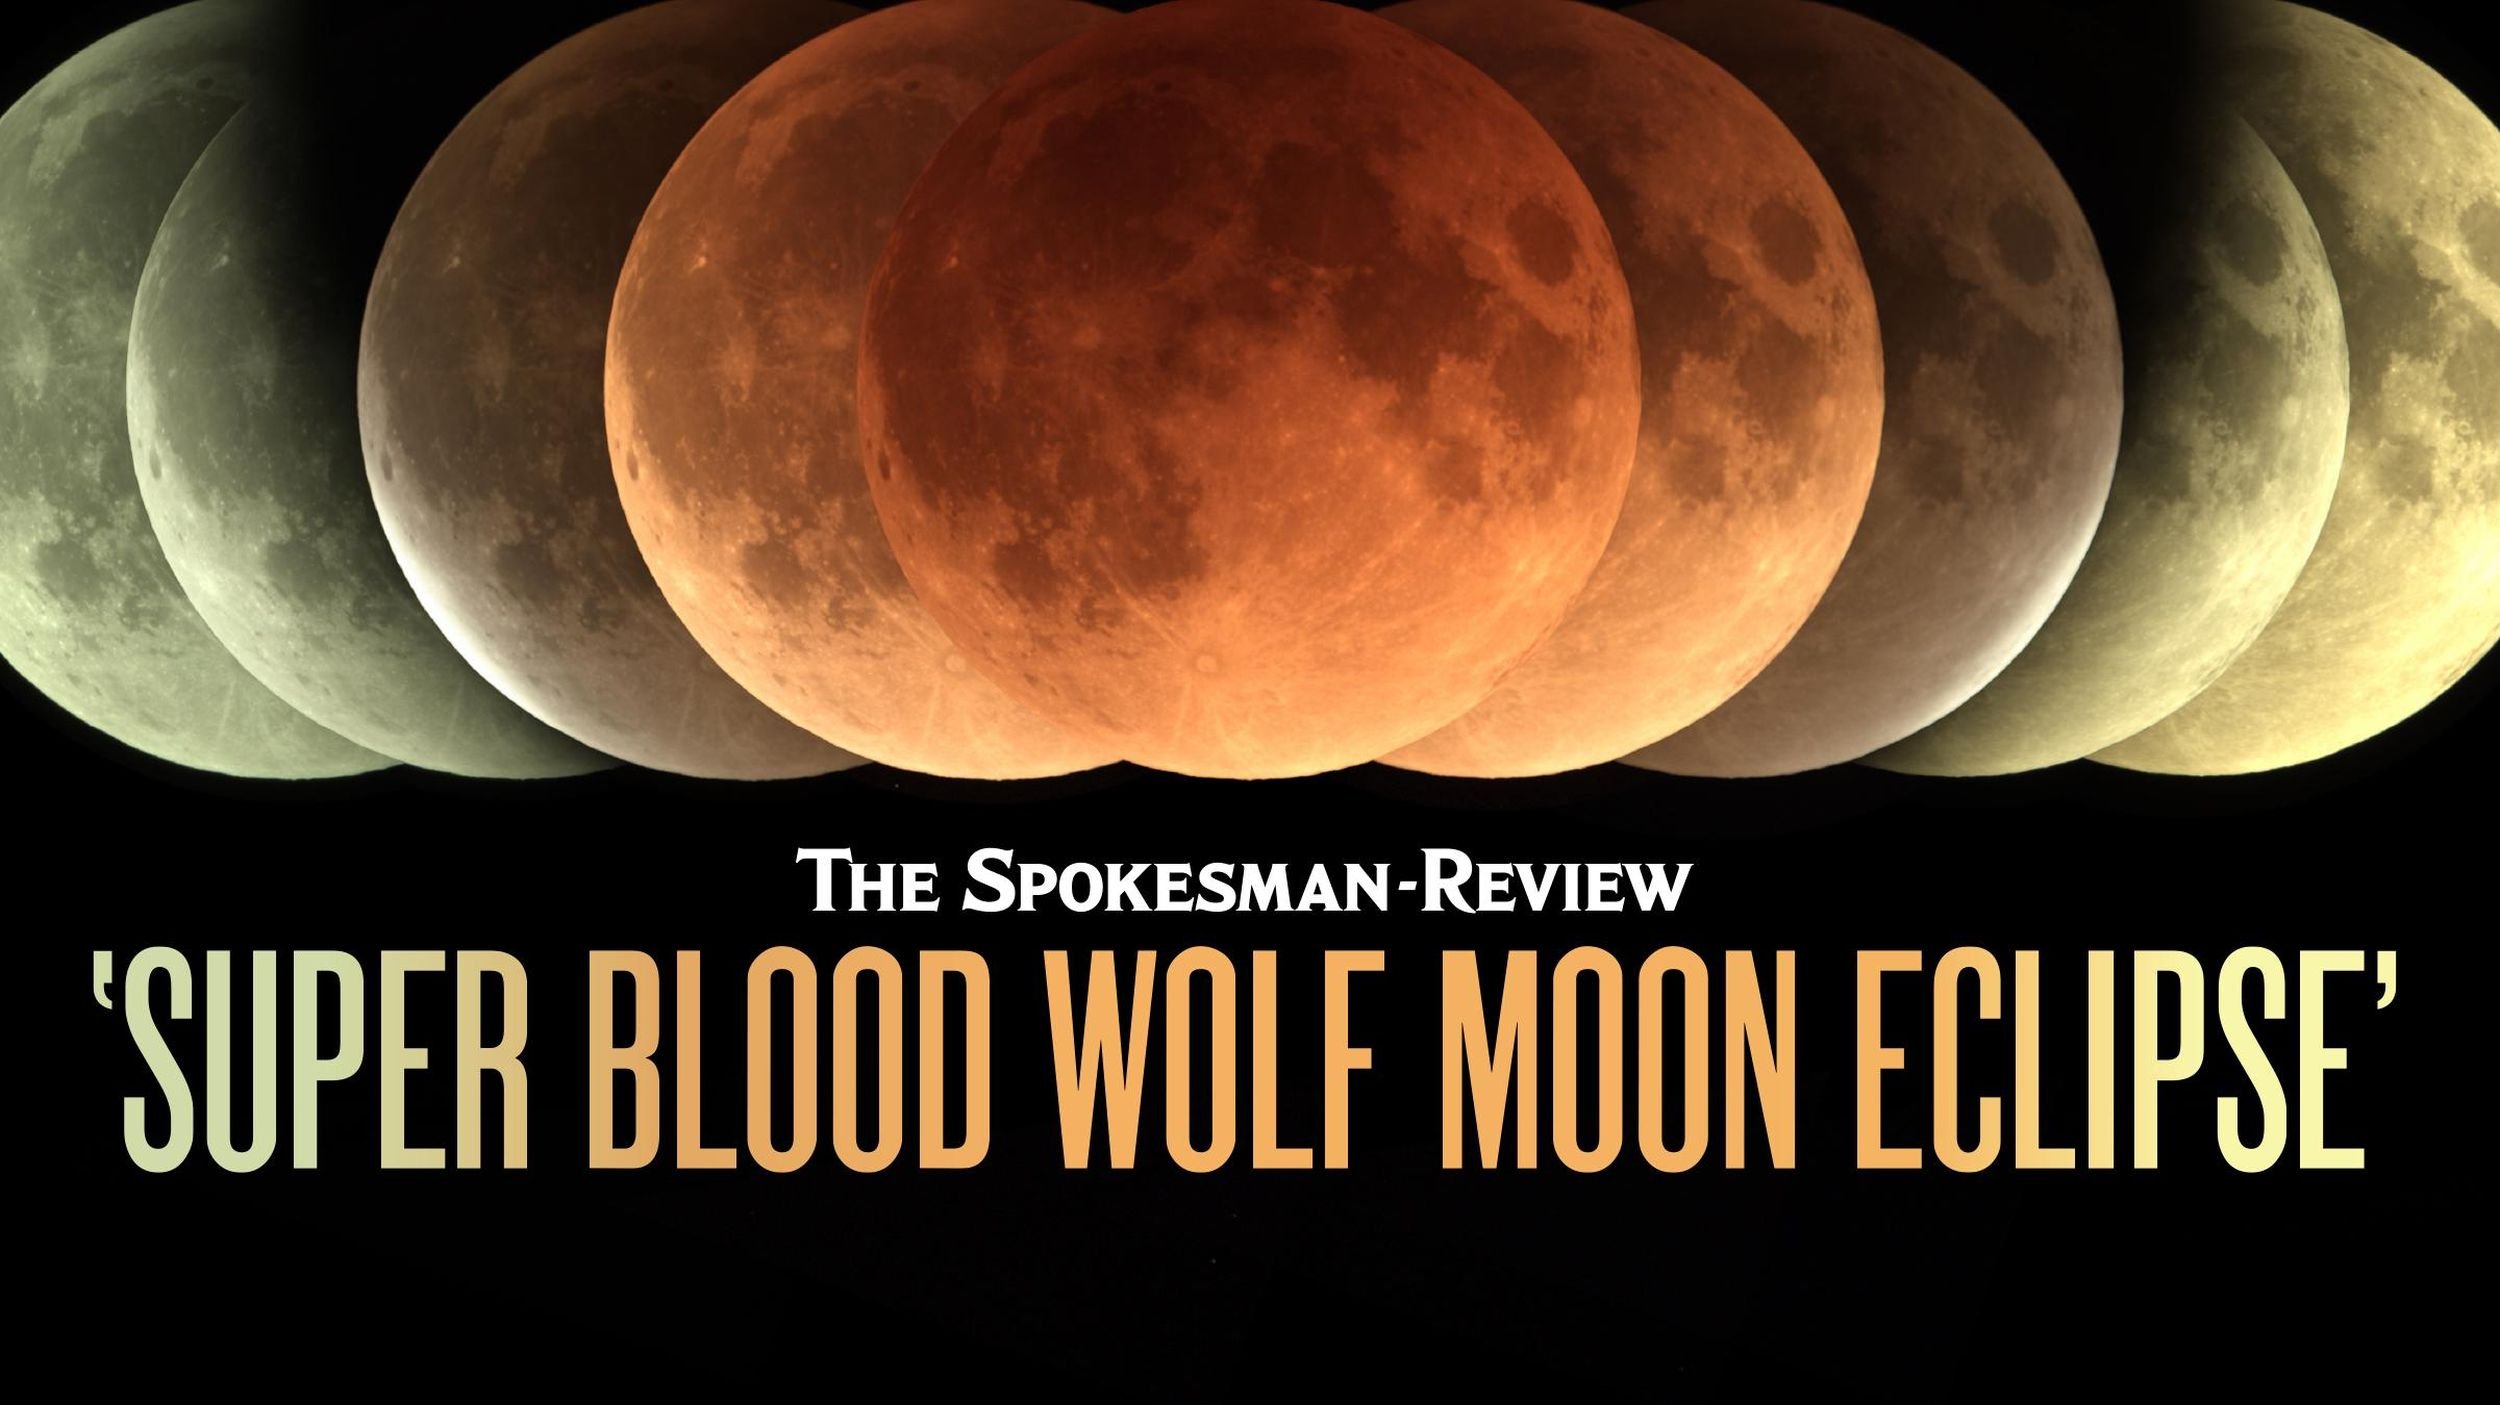 super blood wolf moon eclipse worth howling about if weather clears the spokesman review super blood wolf moon eclipse worth